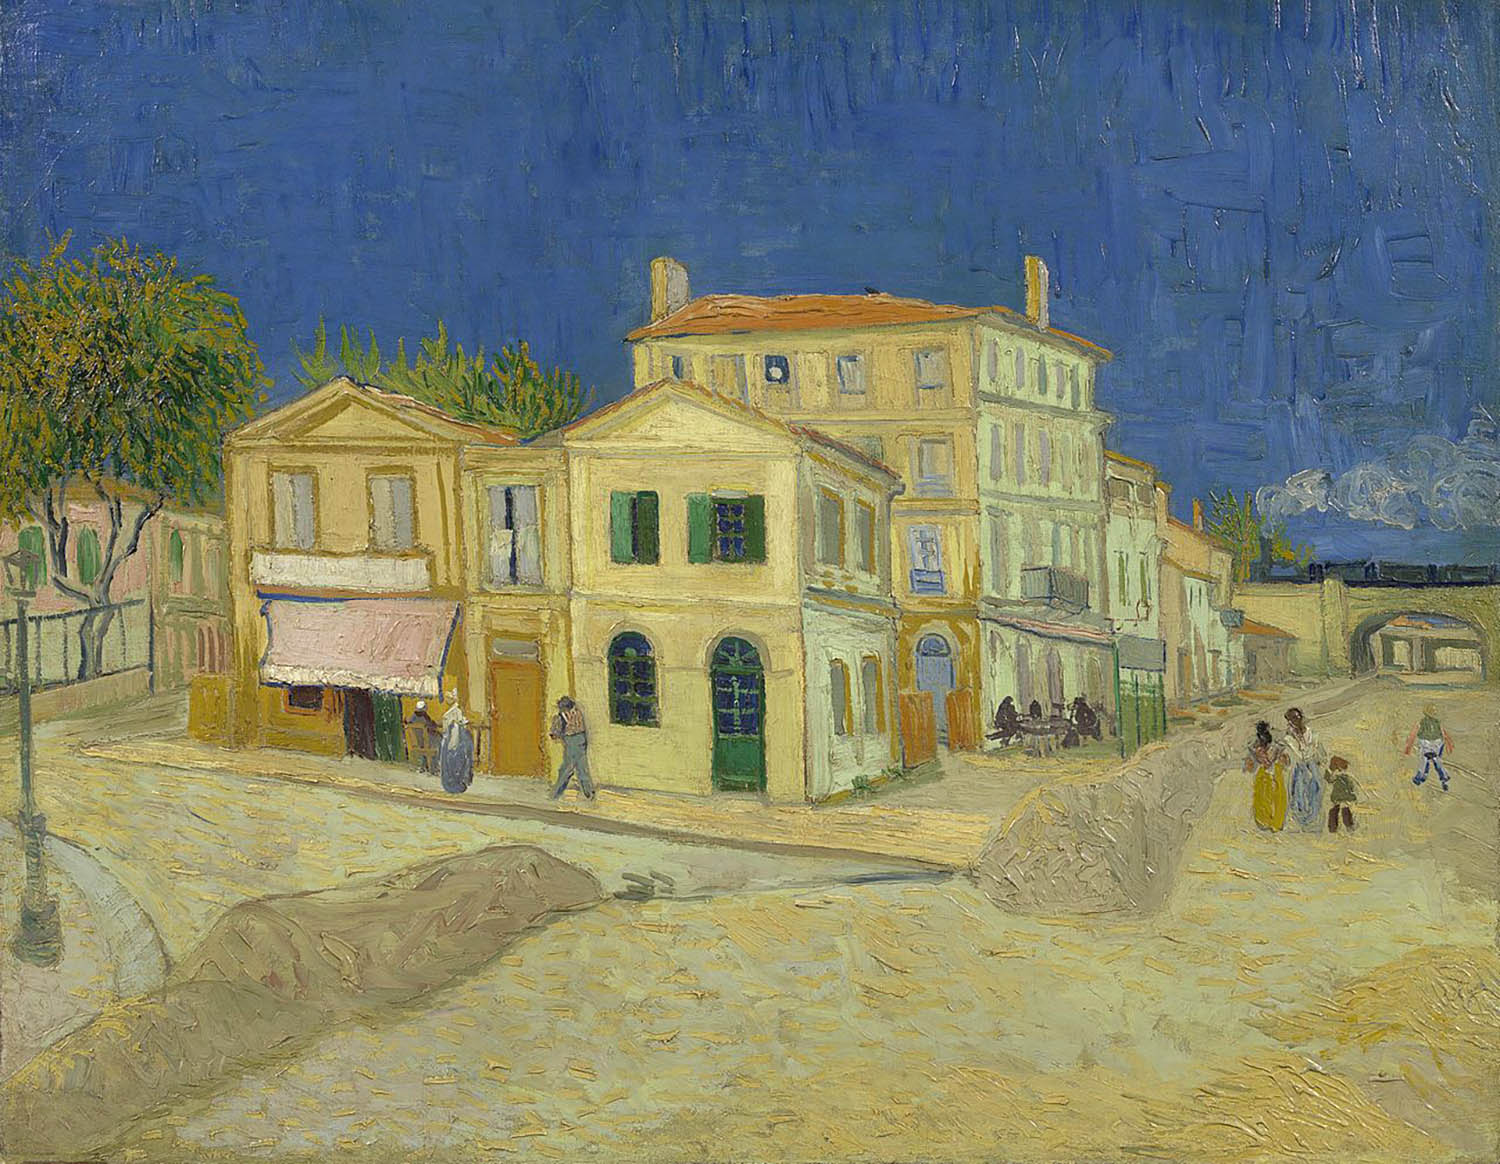 Vincent-van-Gogh_The-yellow-house_The-street